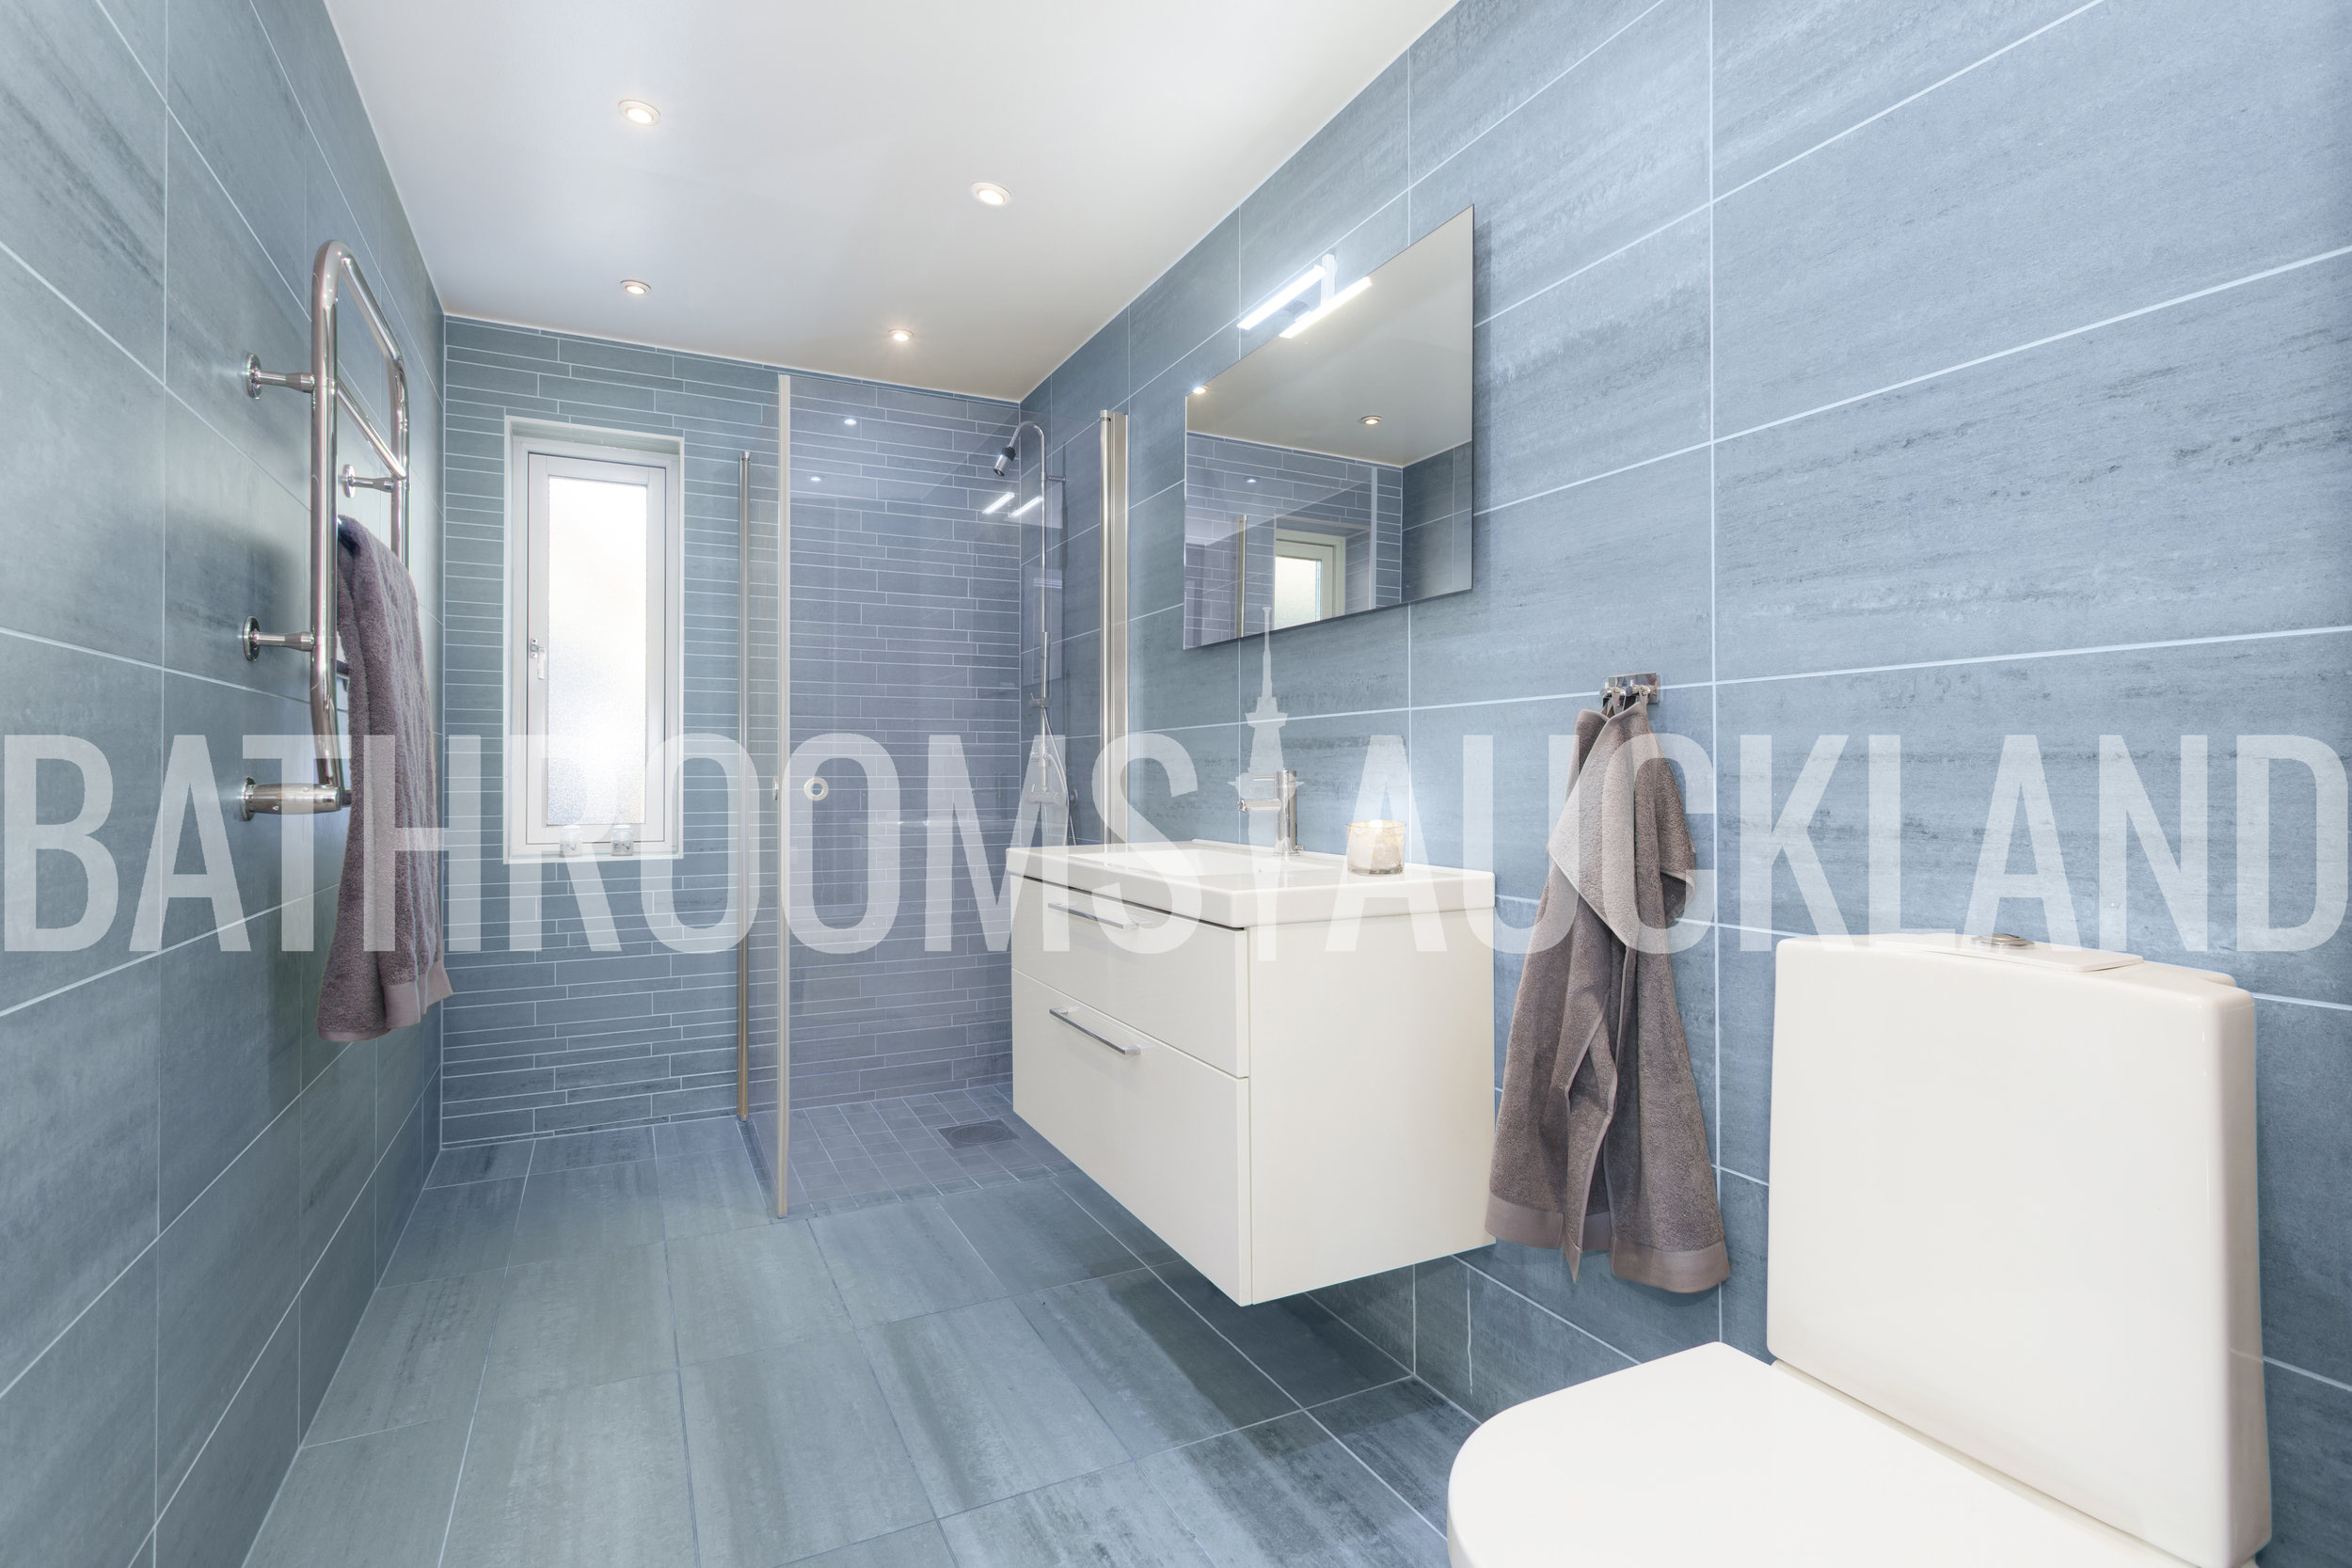 Bathrooms Auckland Renovation_Bathrooms In Auckland_Bathroom Renovation_Bathrooms Renovation_Bathrooms Auckland Renovation .1213.jpg